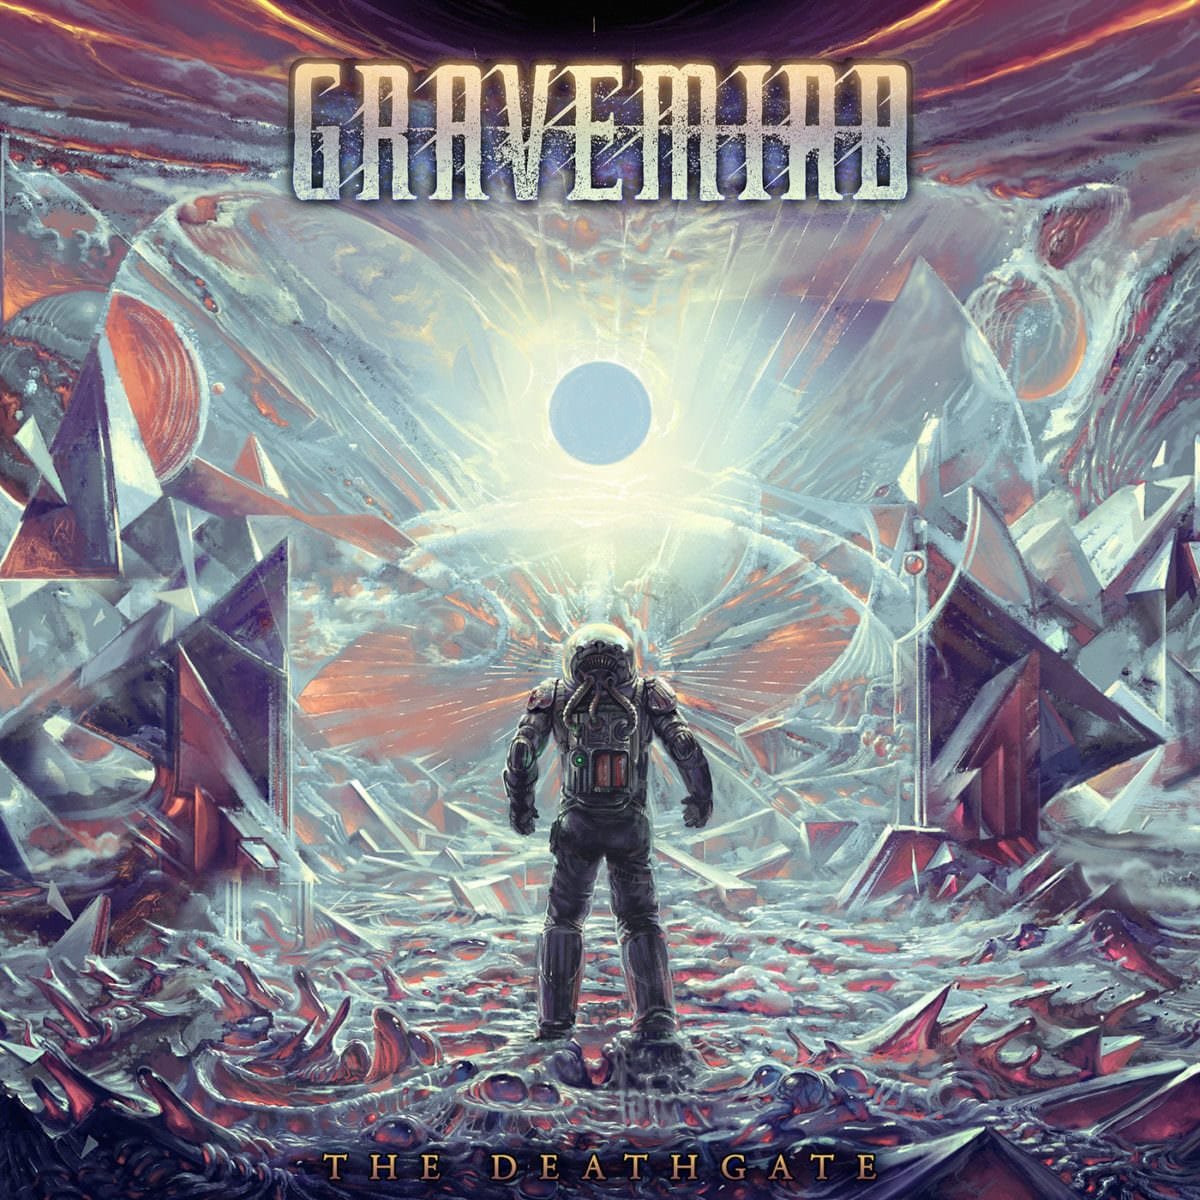 GRAVEMIND - THE DEATHGATE cover